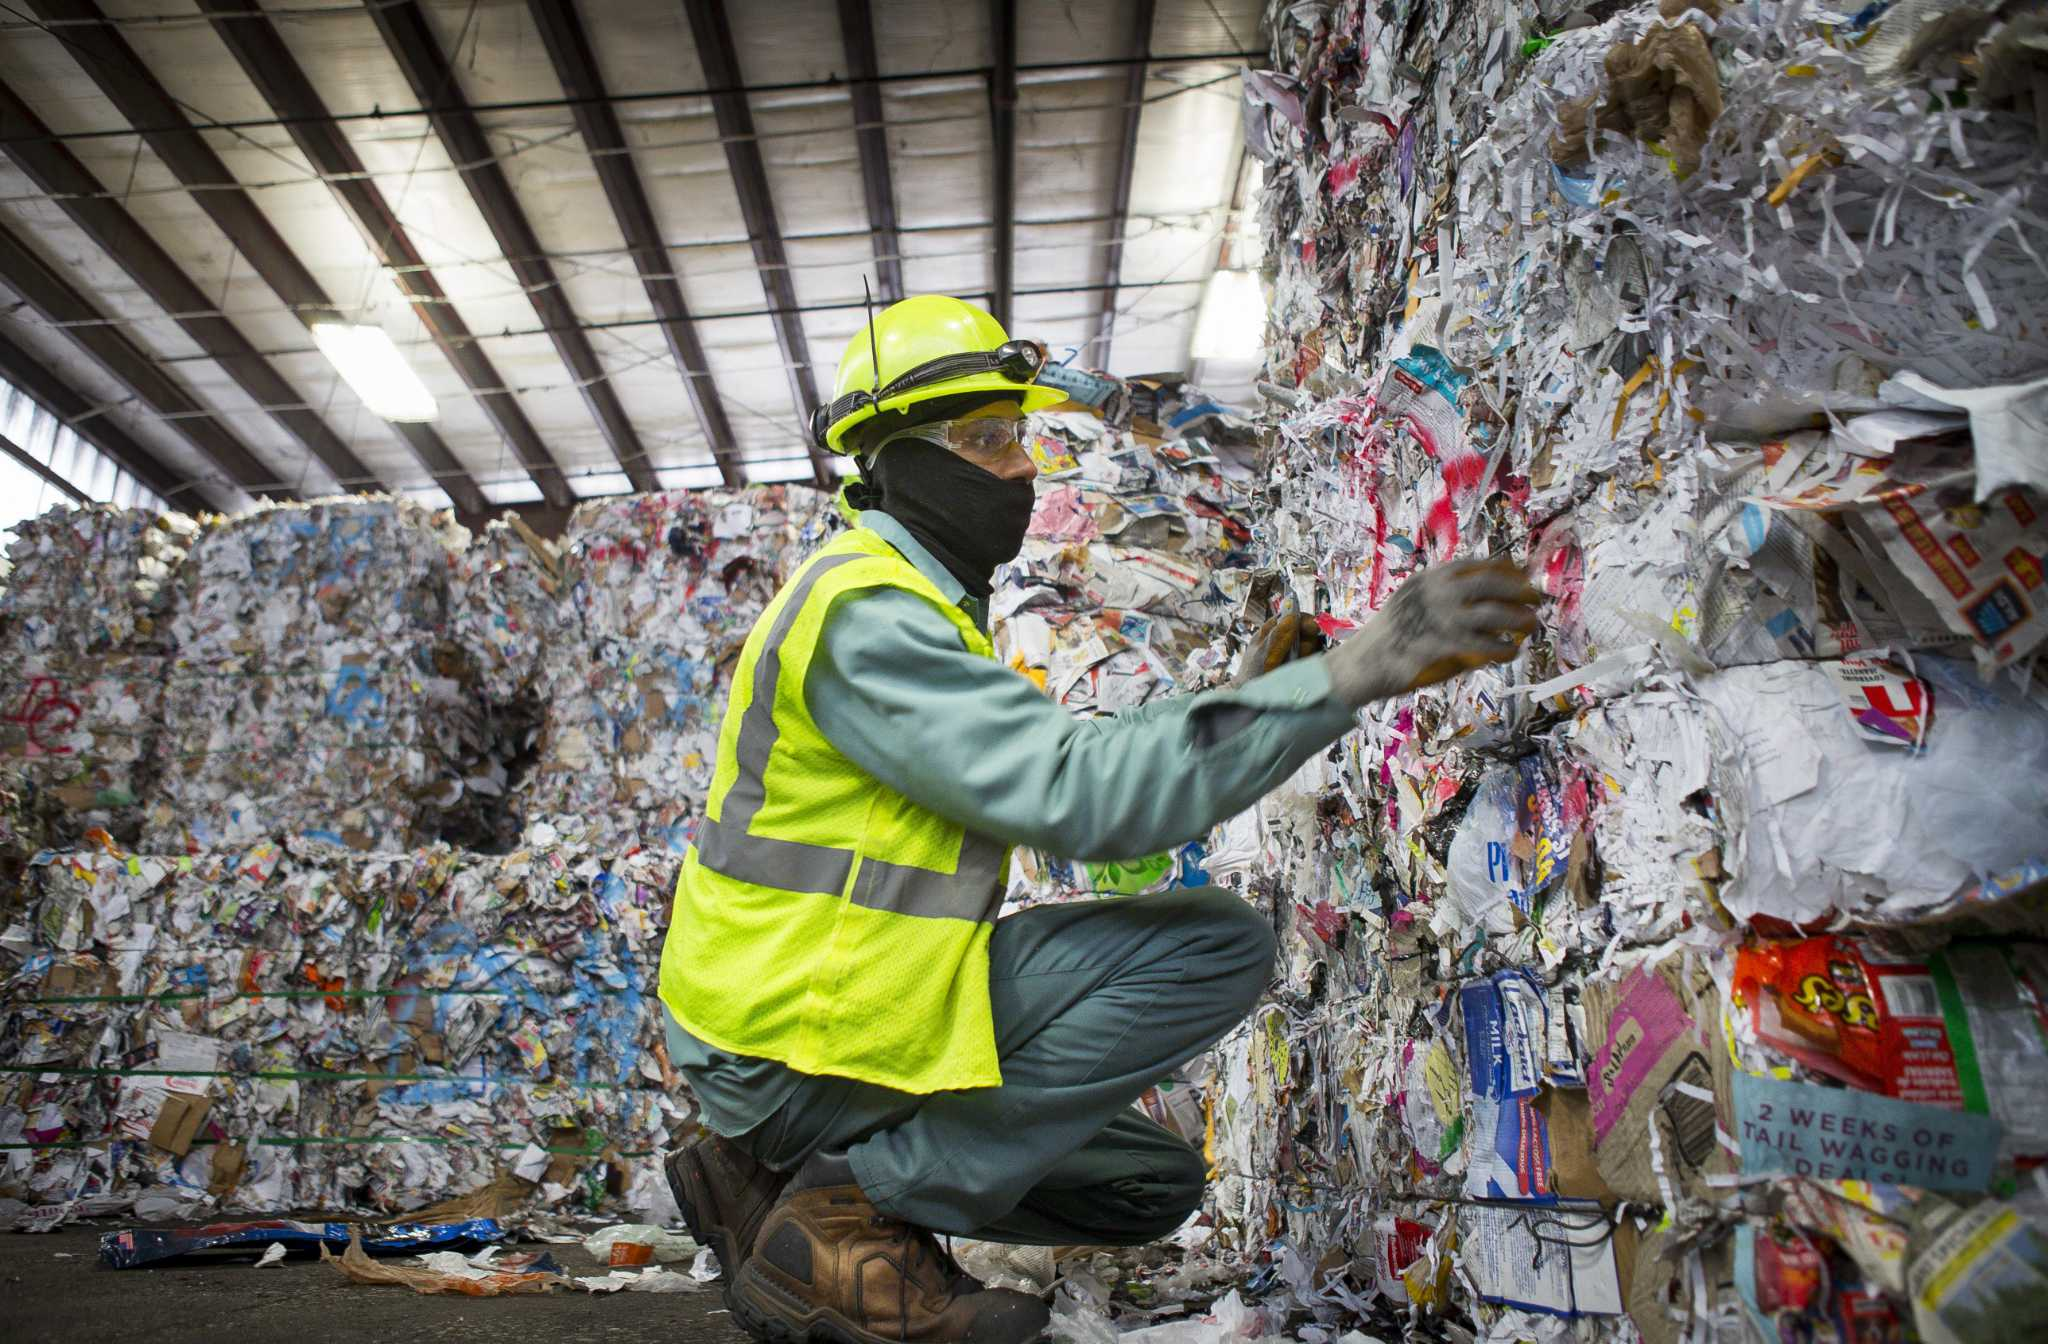 30 percent of items recycled in SA are trash - San Antonio